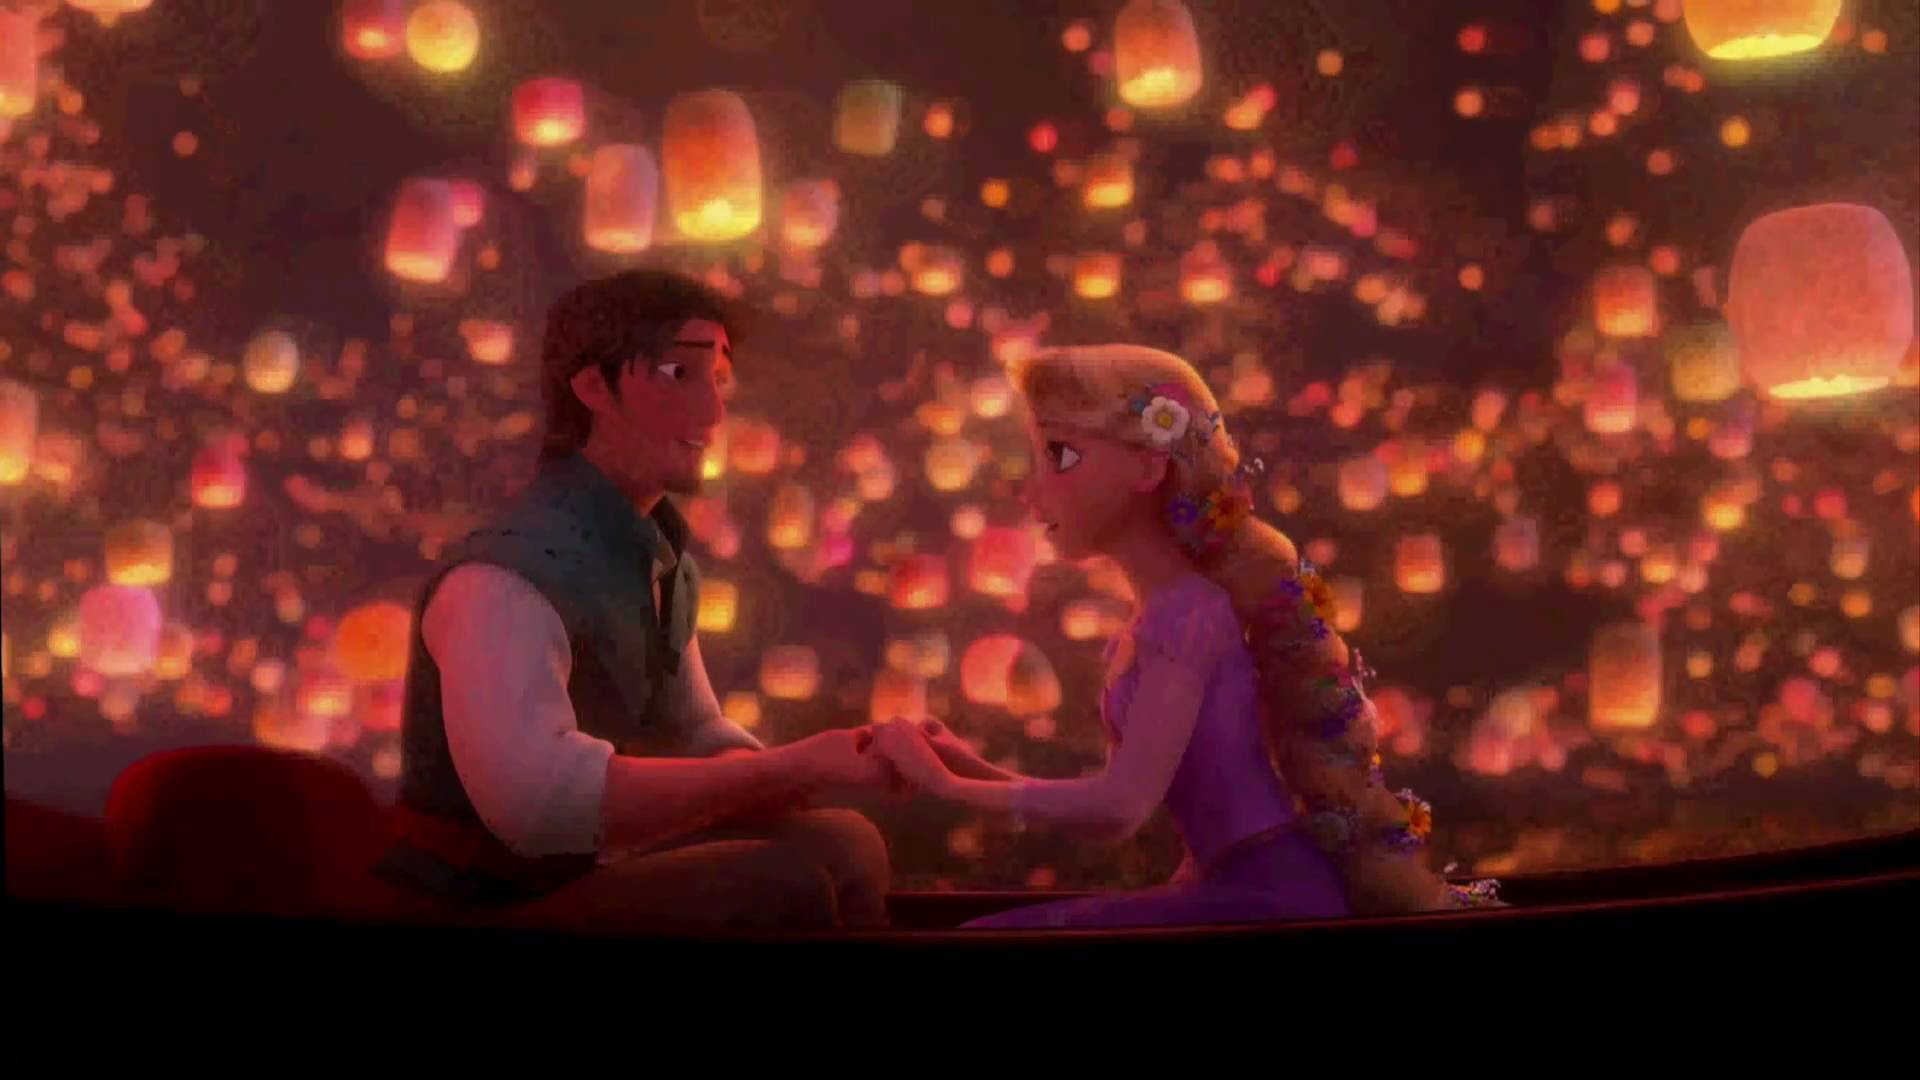 Tangled Lantern Wallpapers - Top Free Tangled Lantern ... Disney Tangled Lanterns Wallpaper